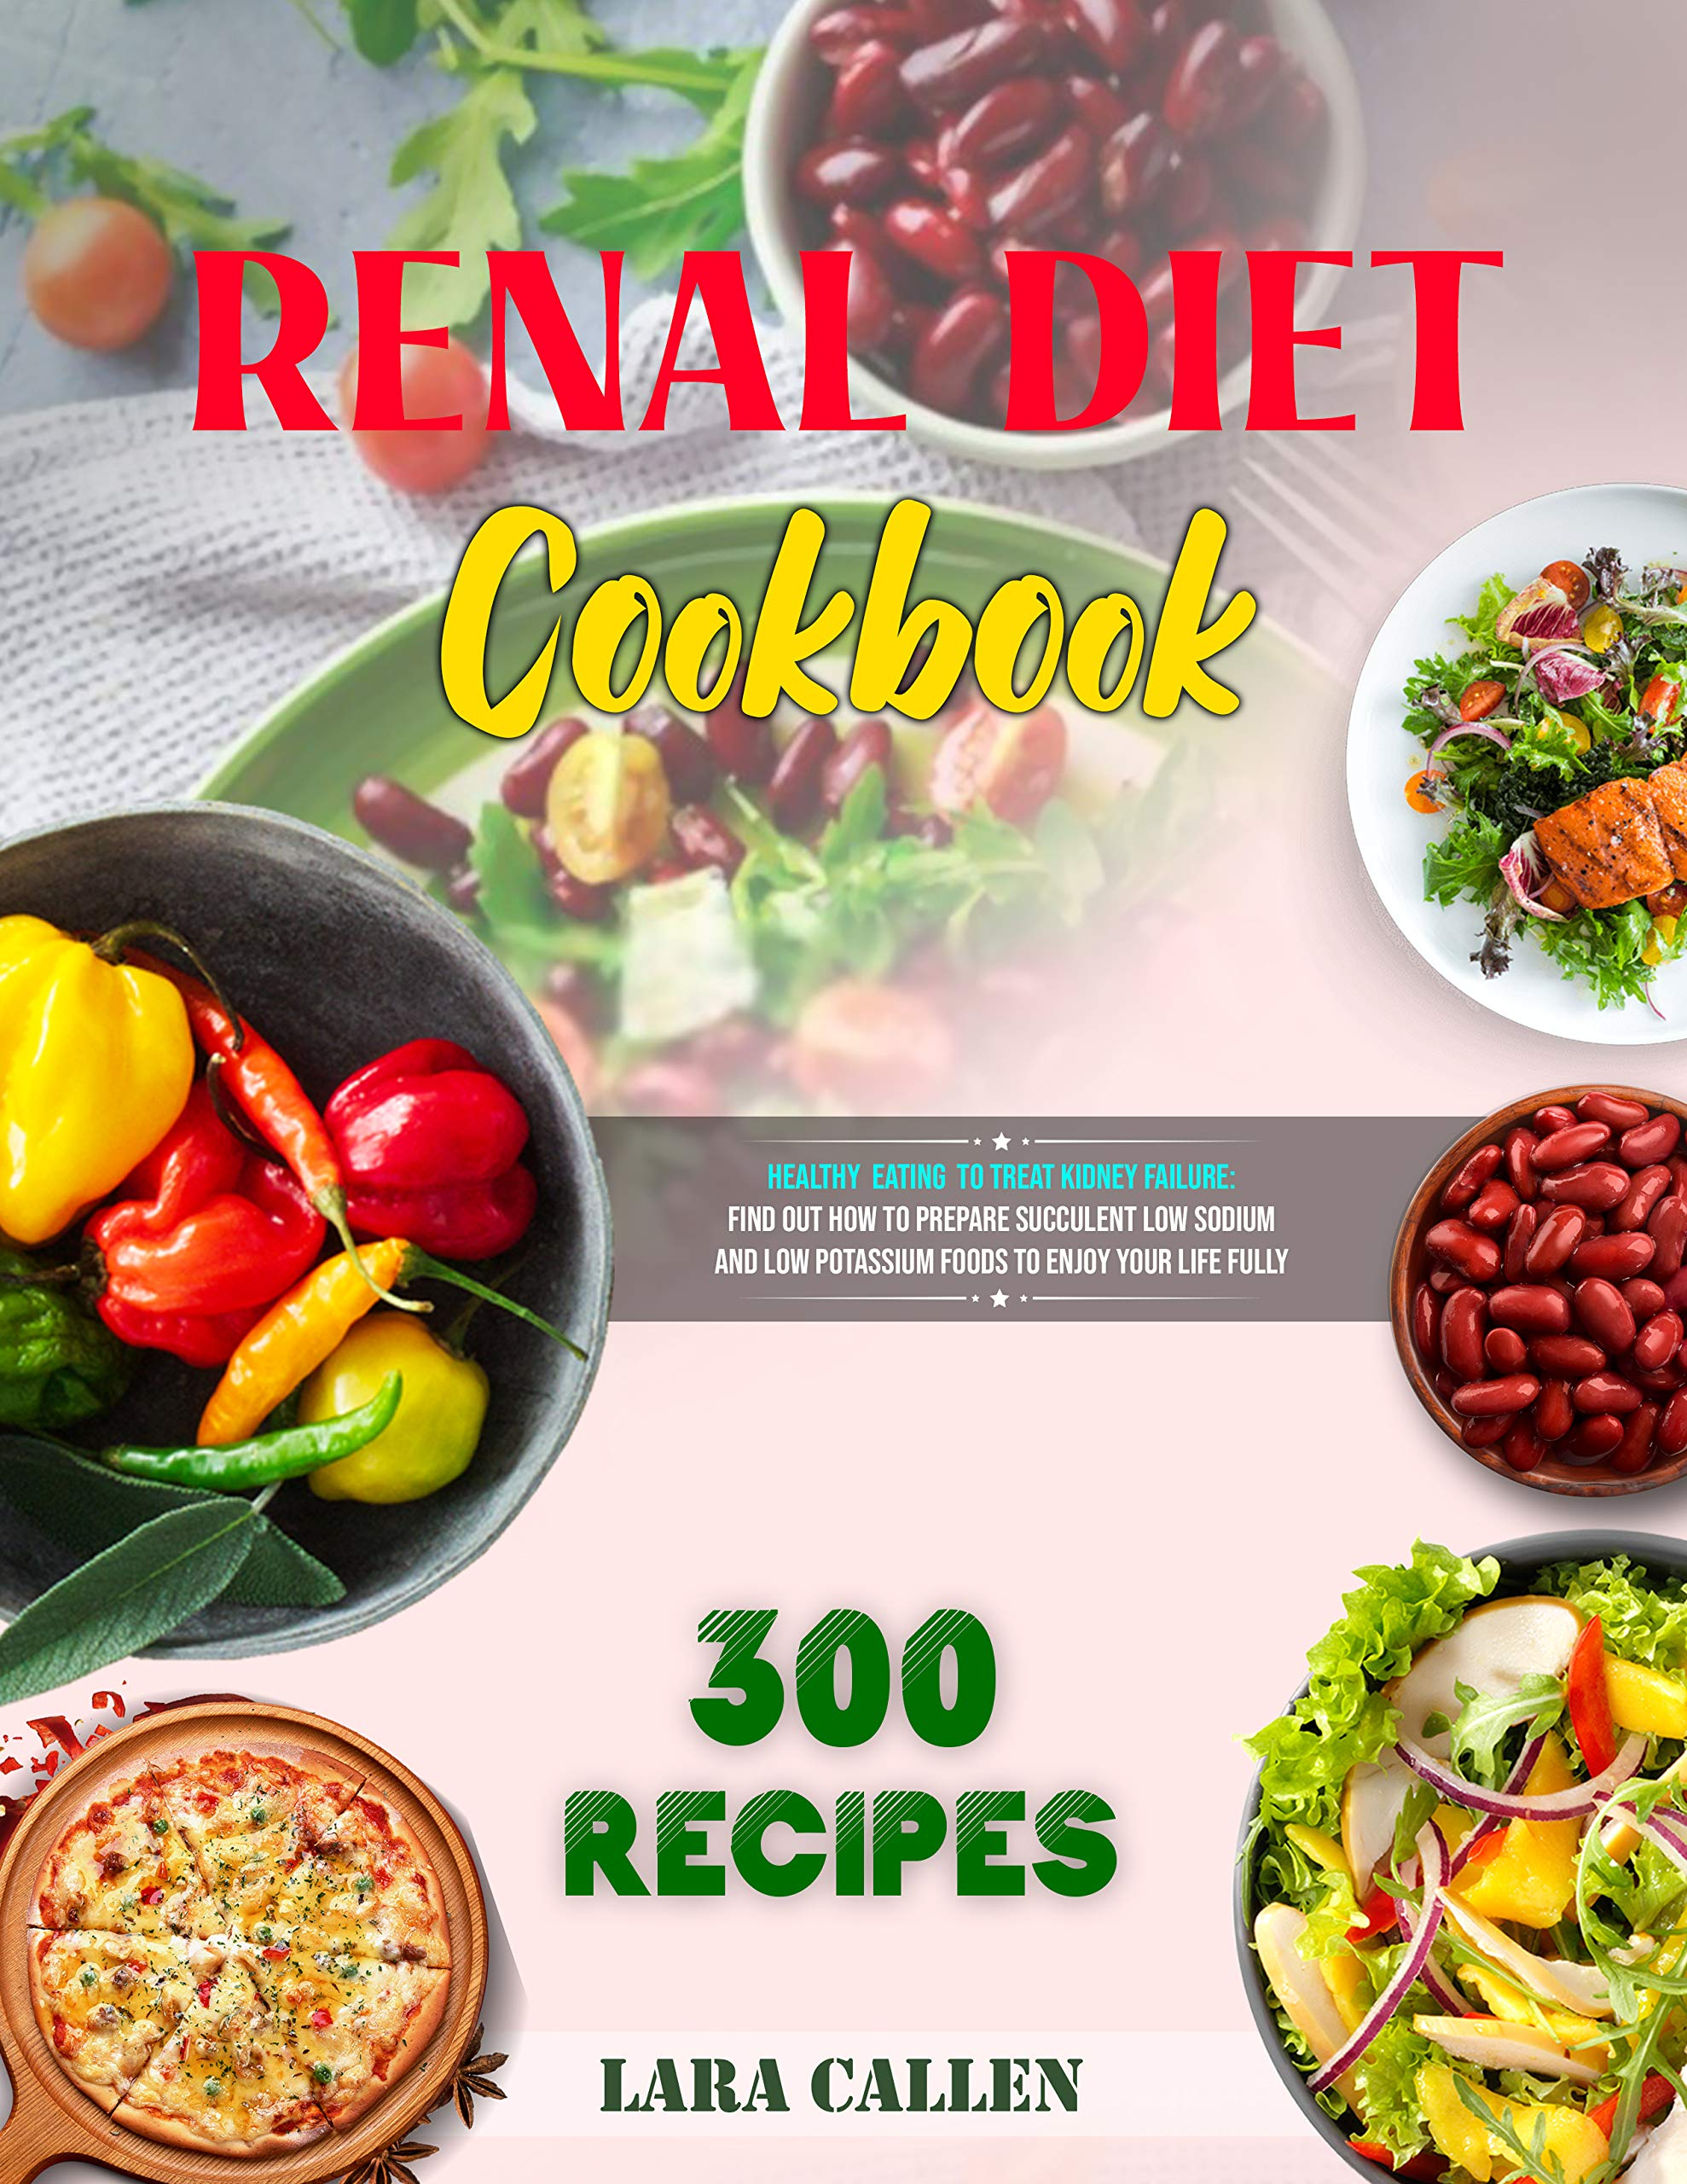 Renal Diet Cookbook : Healthy Eating to Treat Kidney Failure: Find out How to Prepare Succulent Low Sodium and Low Potassium Foods to Enjoy Your Life Fully